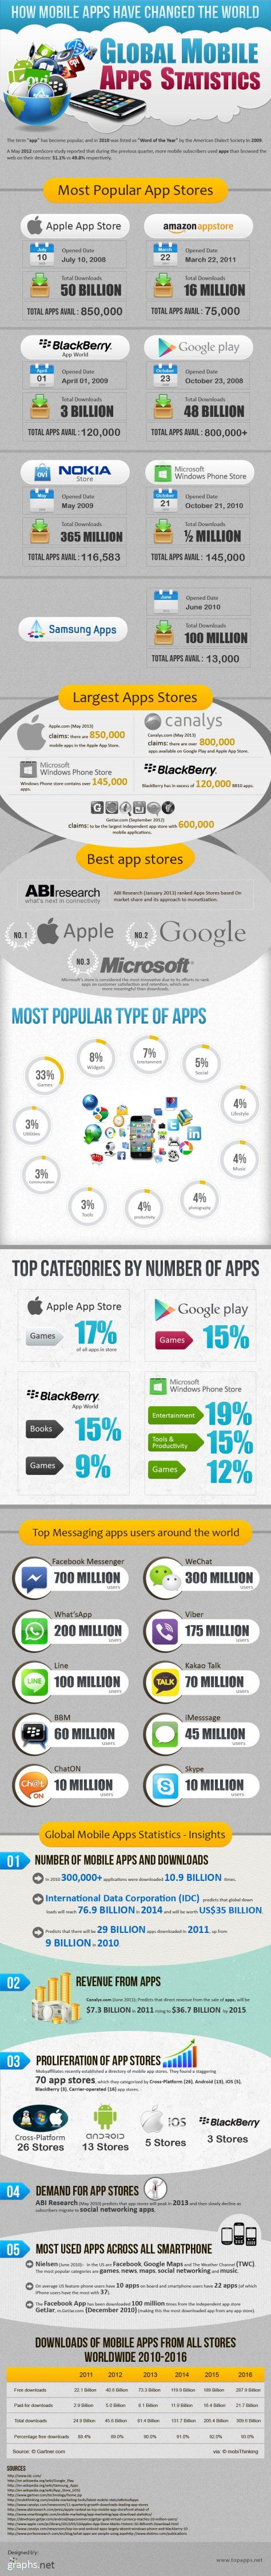 Mobile Apps Global Statistics